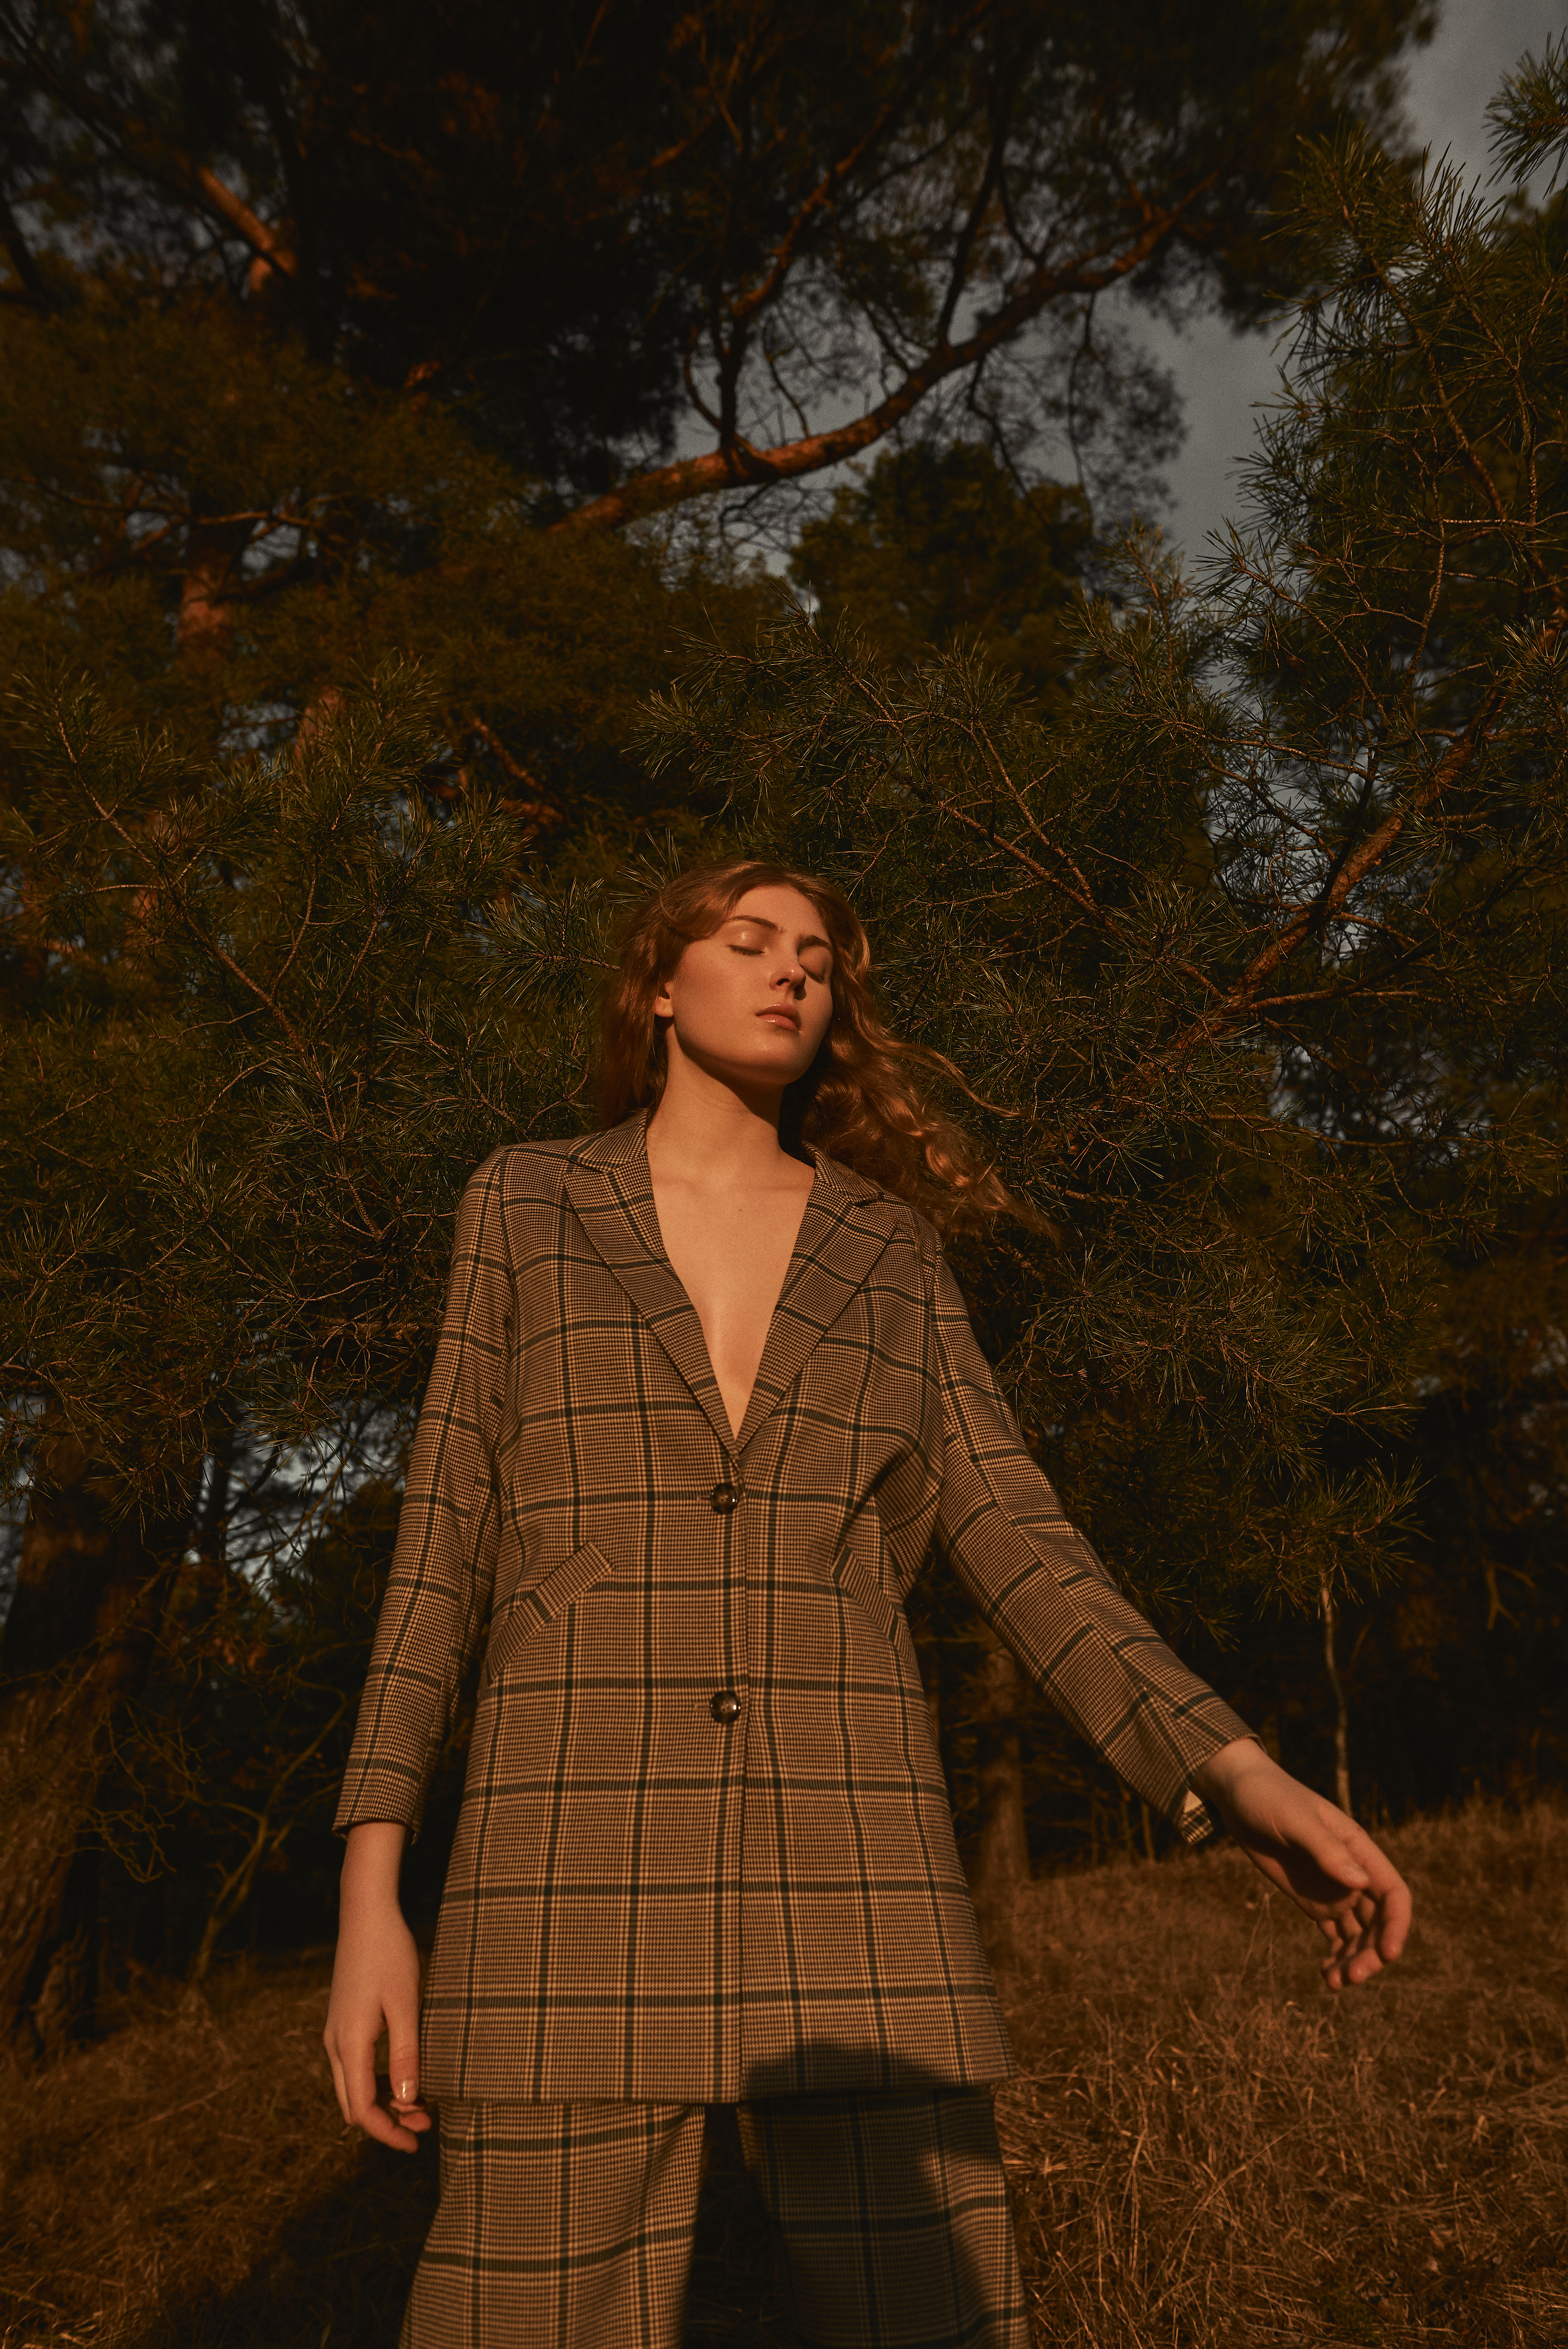 Flanelle Magazine by SARAH STORCH